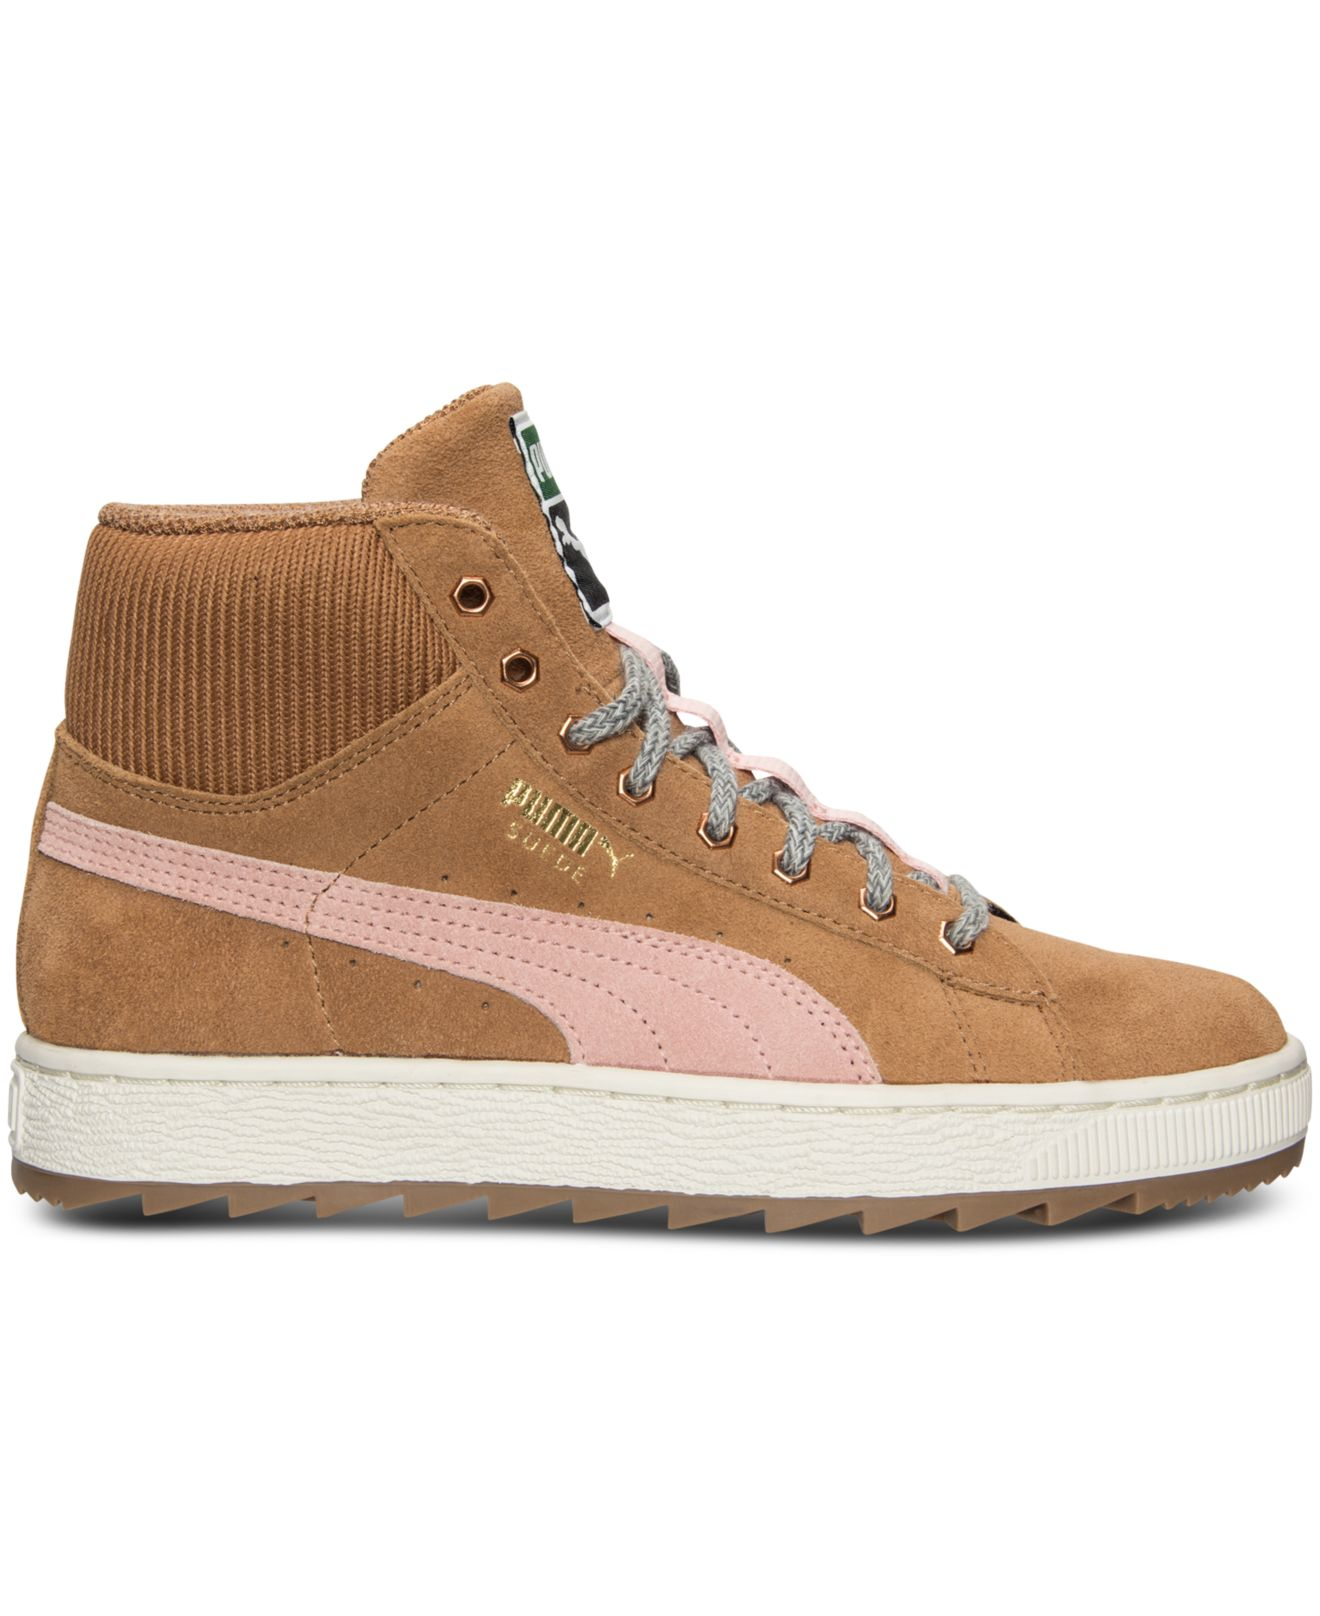 puma womens suede winterized rugged mid casual sneakers